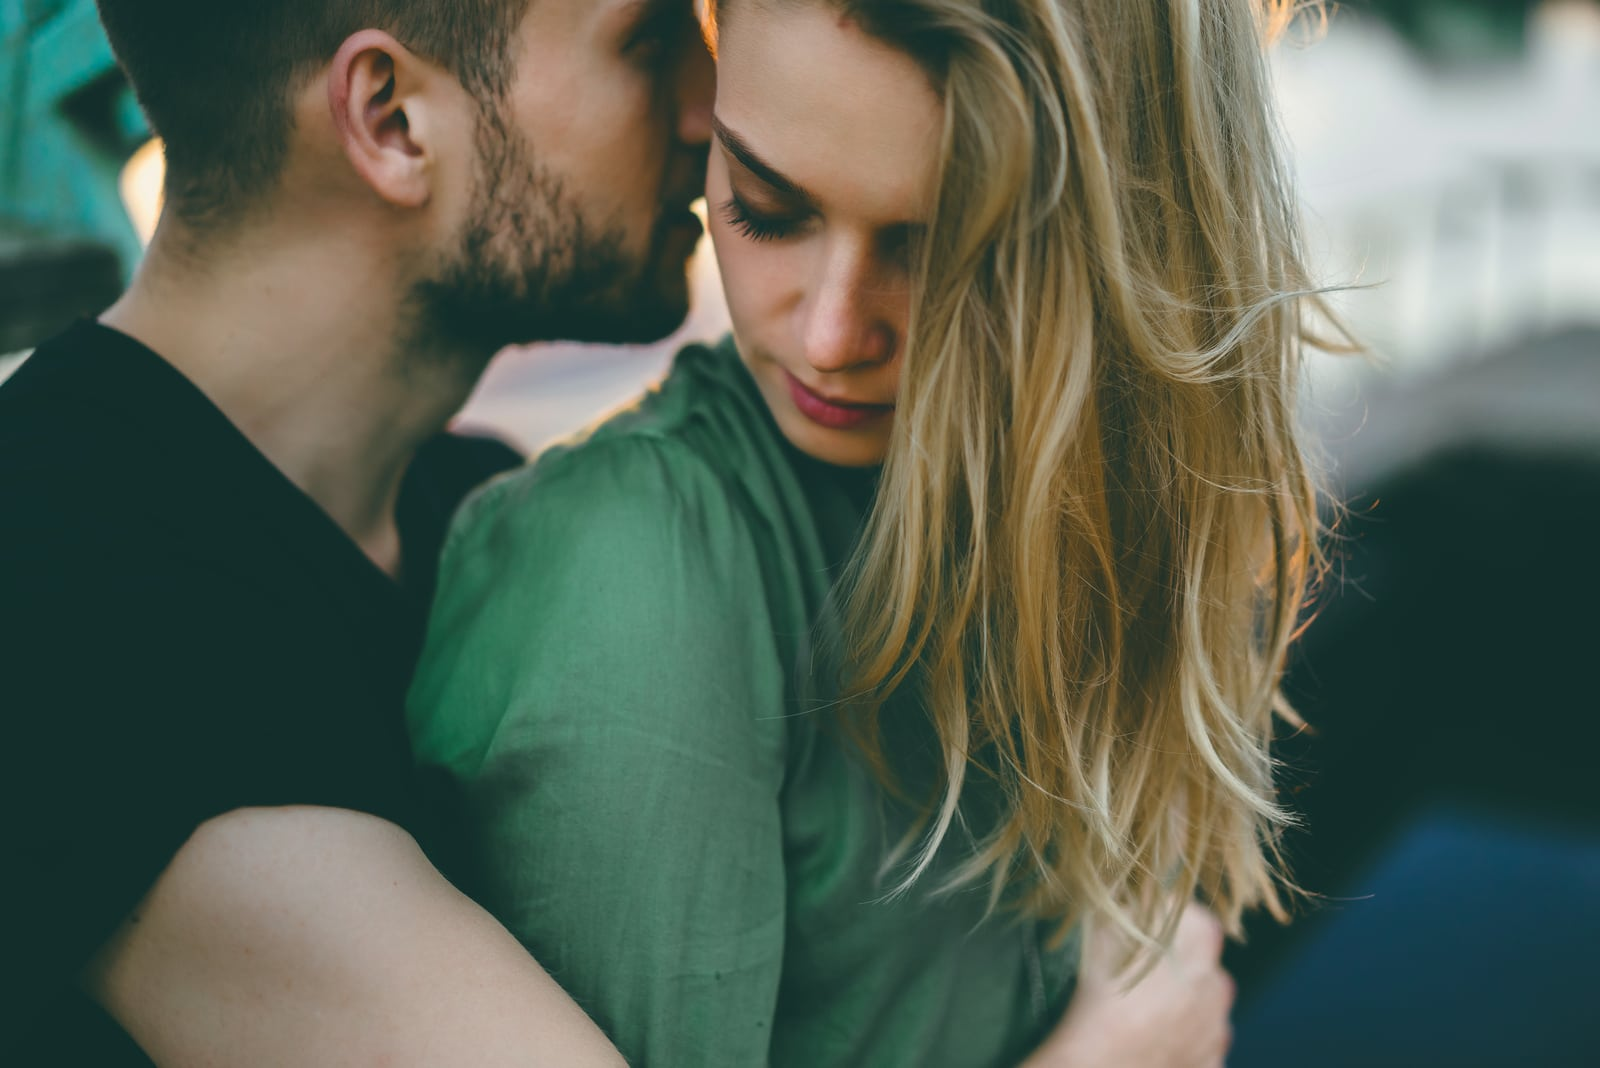 a bearded man hugs the blonde from behind